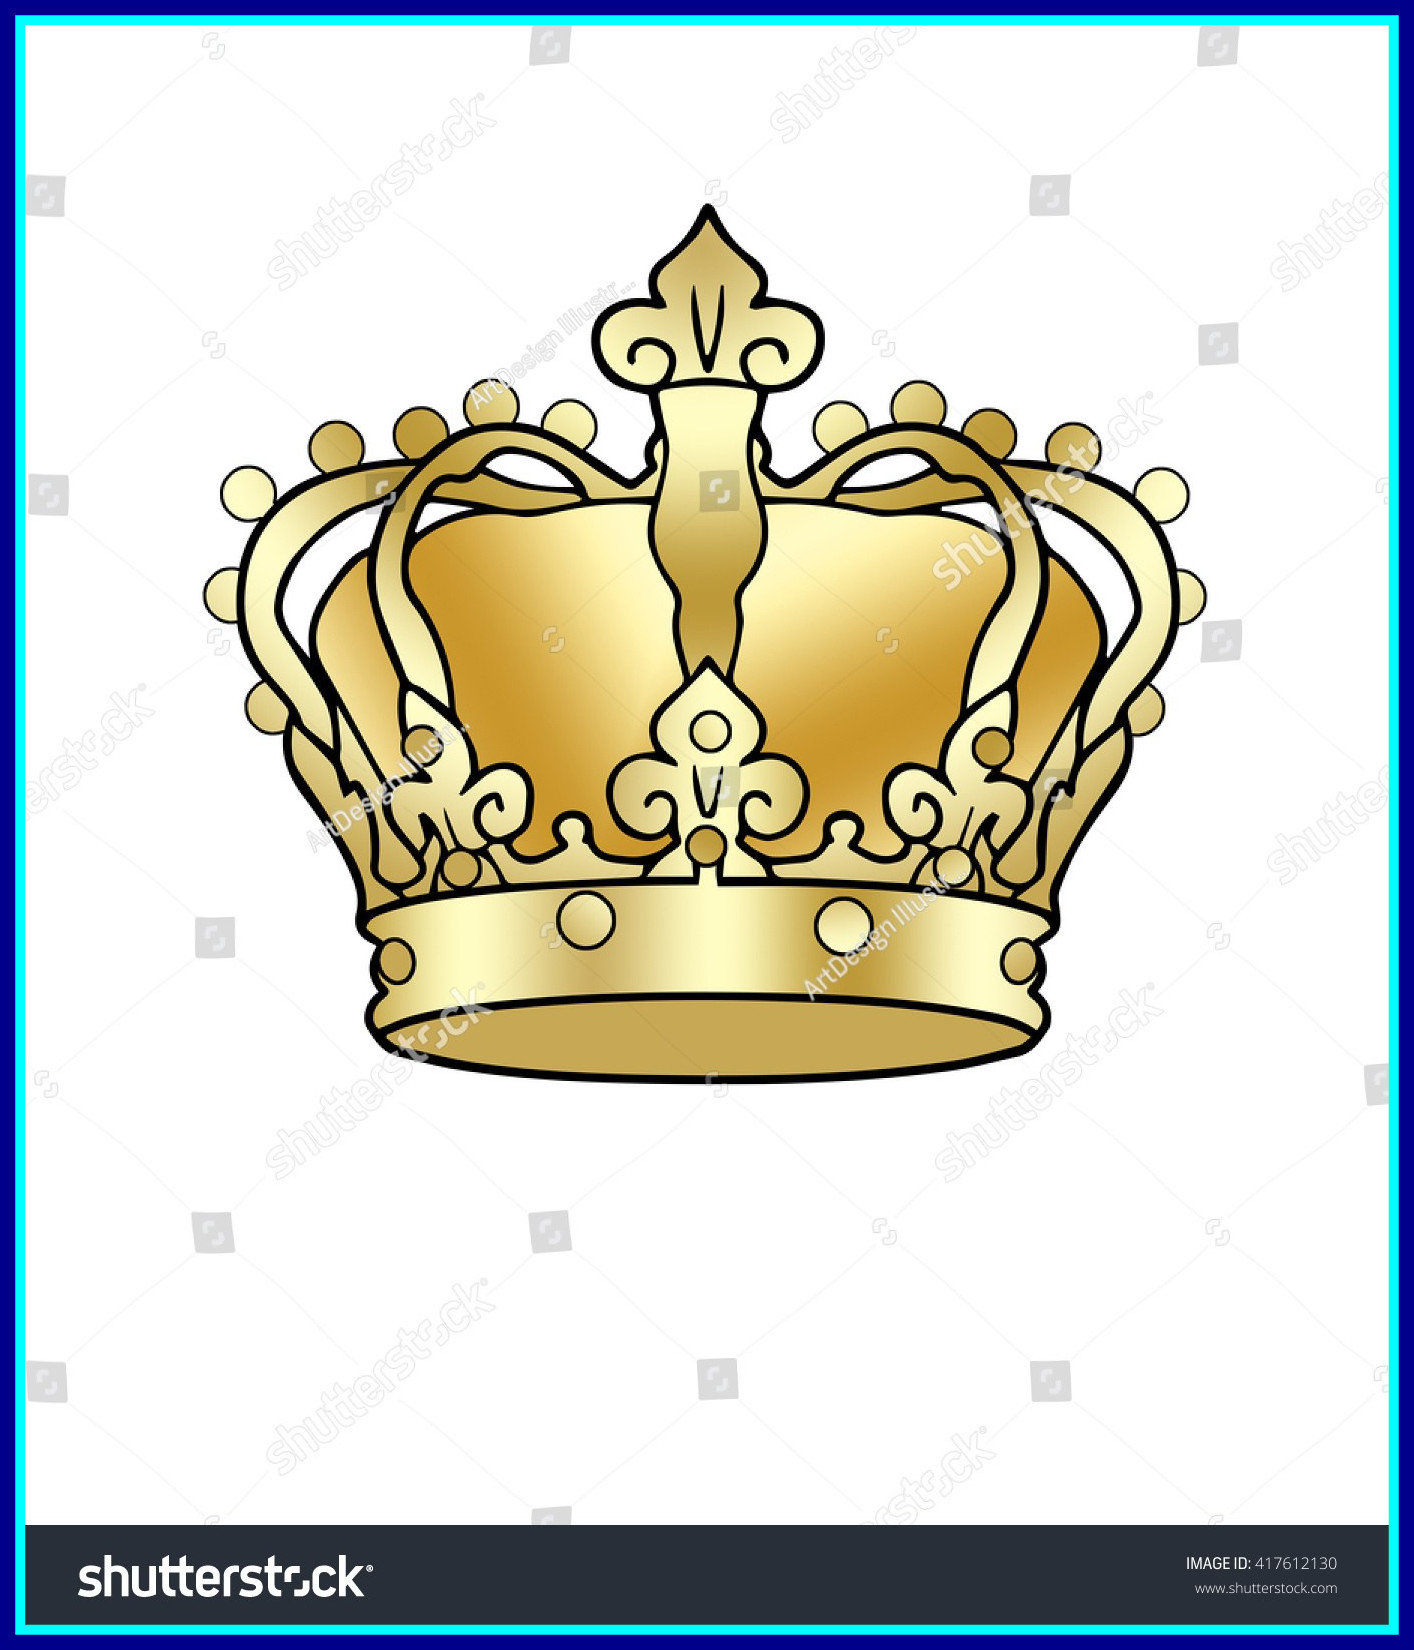 1414x1650 Incredible Crowns Clipart King Clip Art Vintage Golden Graphics